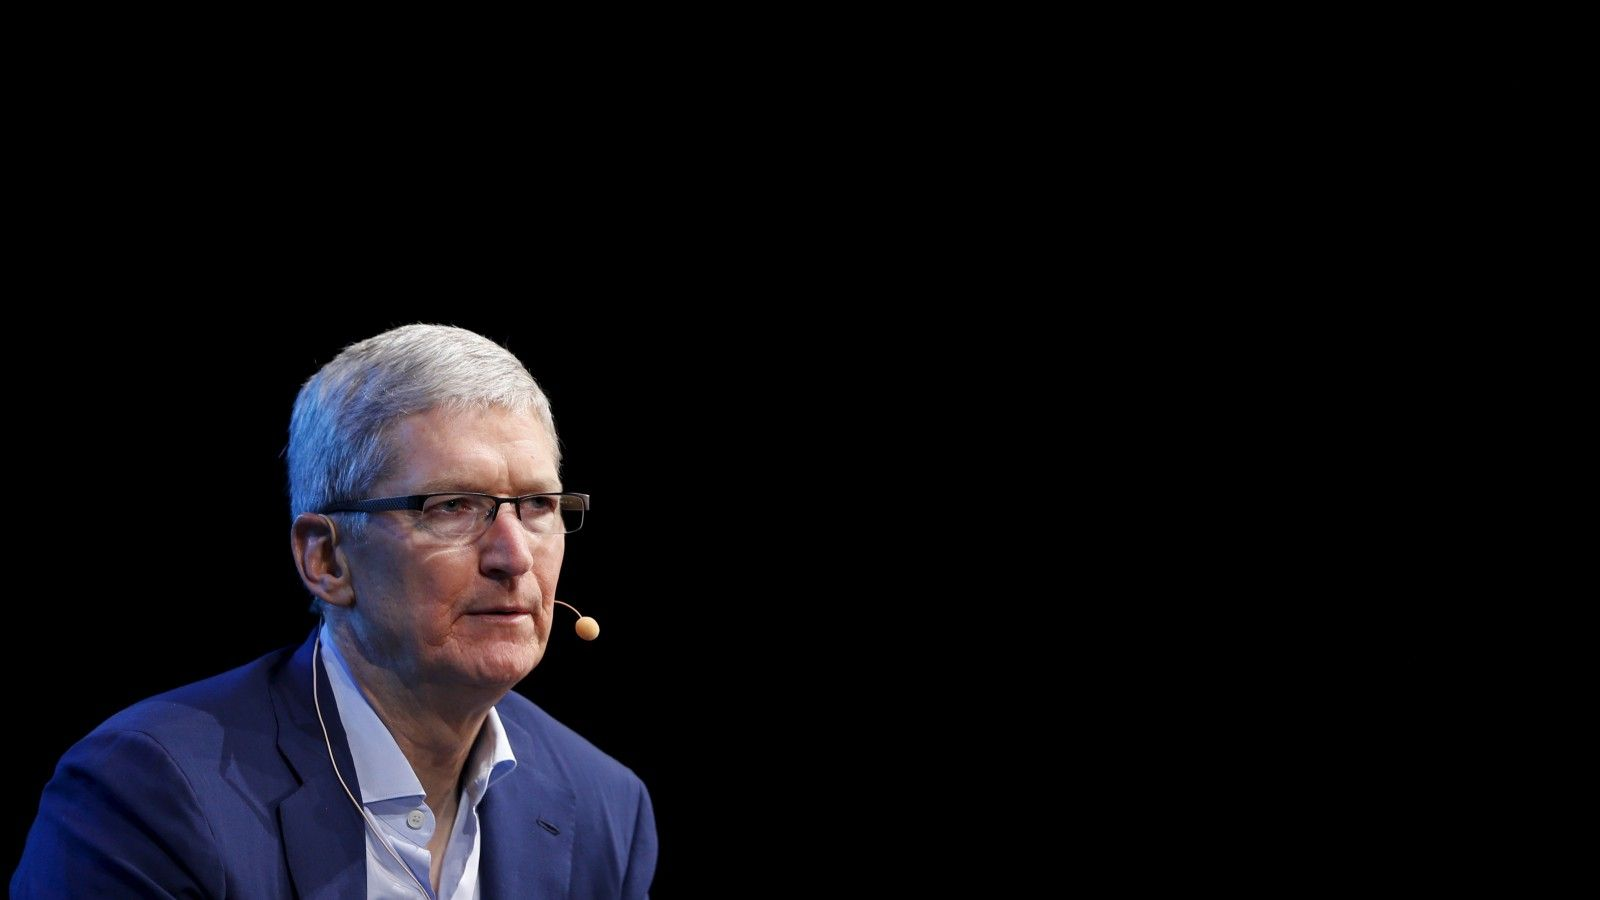 1600x900 - Tim Cook Wallpapers 29